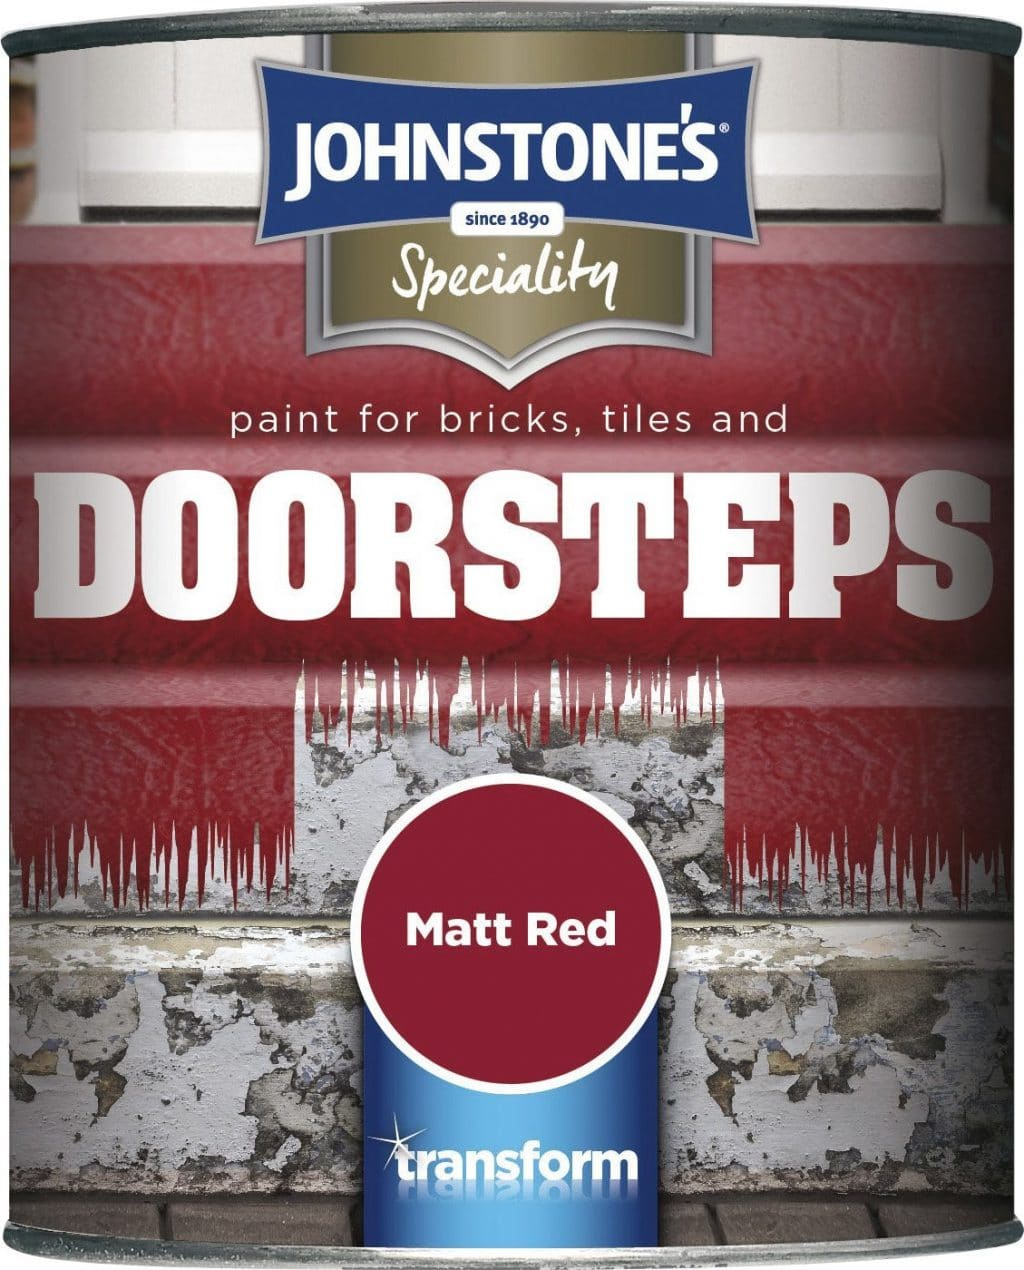 Johnstone's doorsteps paint